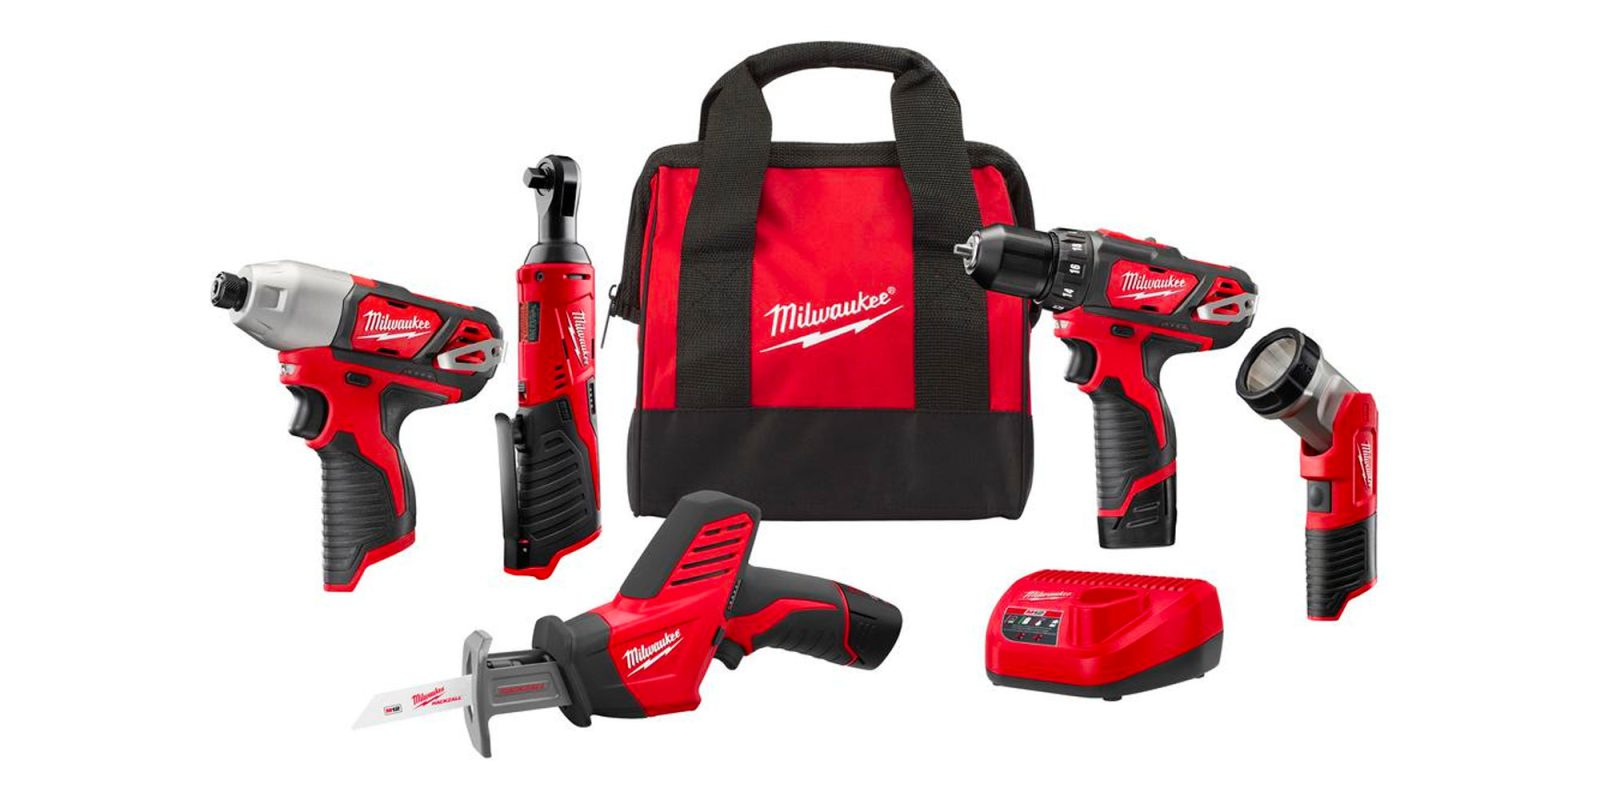 Milwaukee's 5-tool combo kit is a DIYer must-have at $199 (Reg. $349)